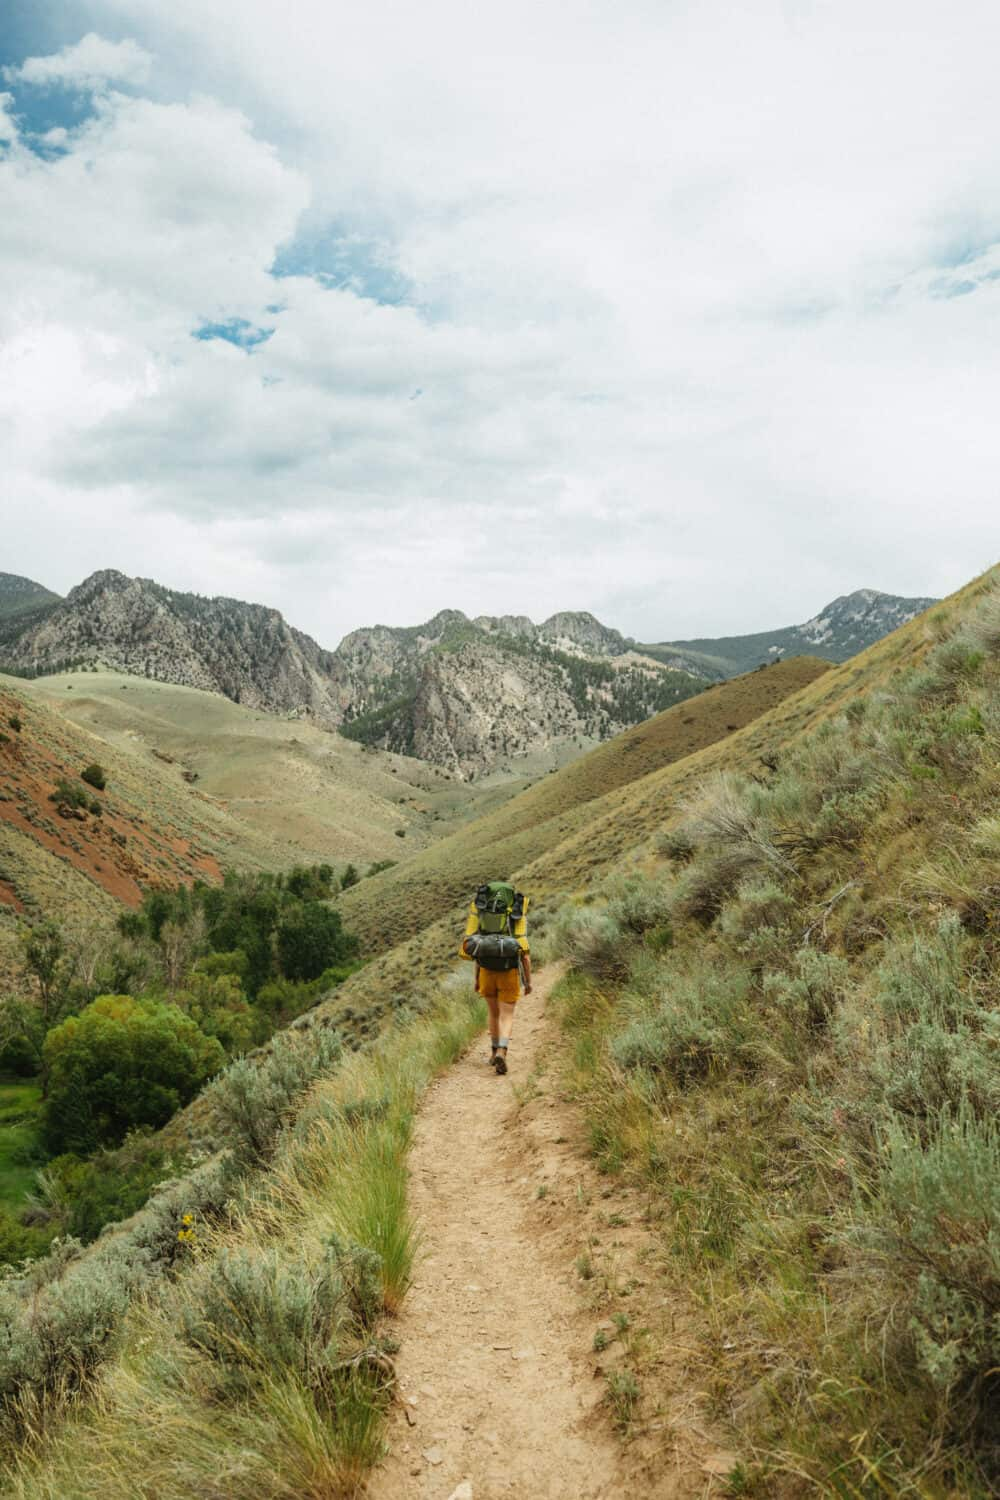 On the trail to Goldbug Hot Springs in Elk Bend, Idaho